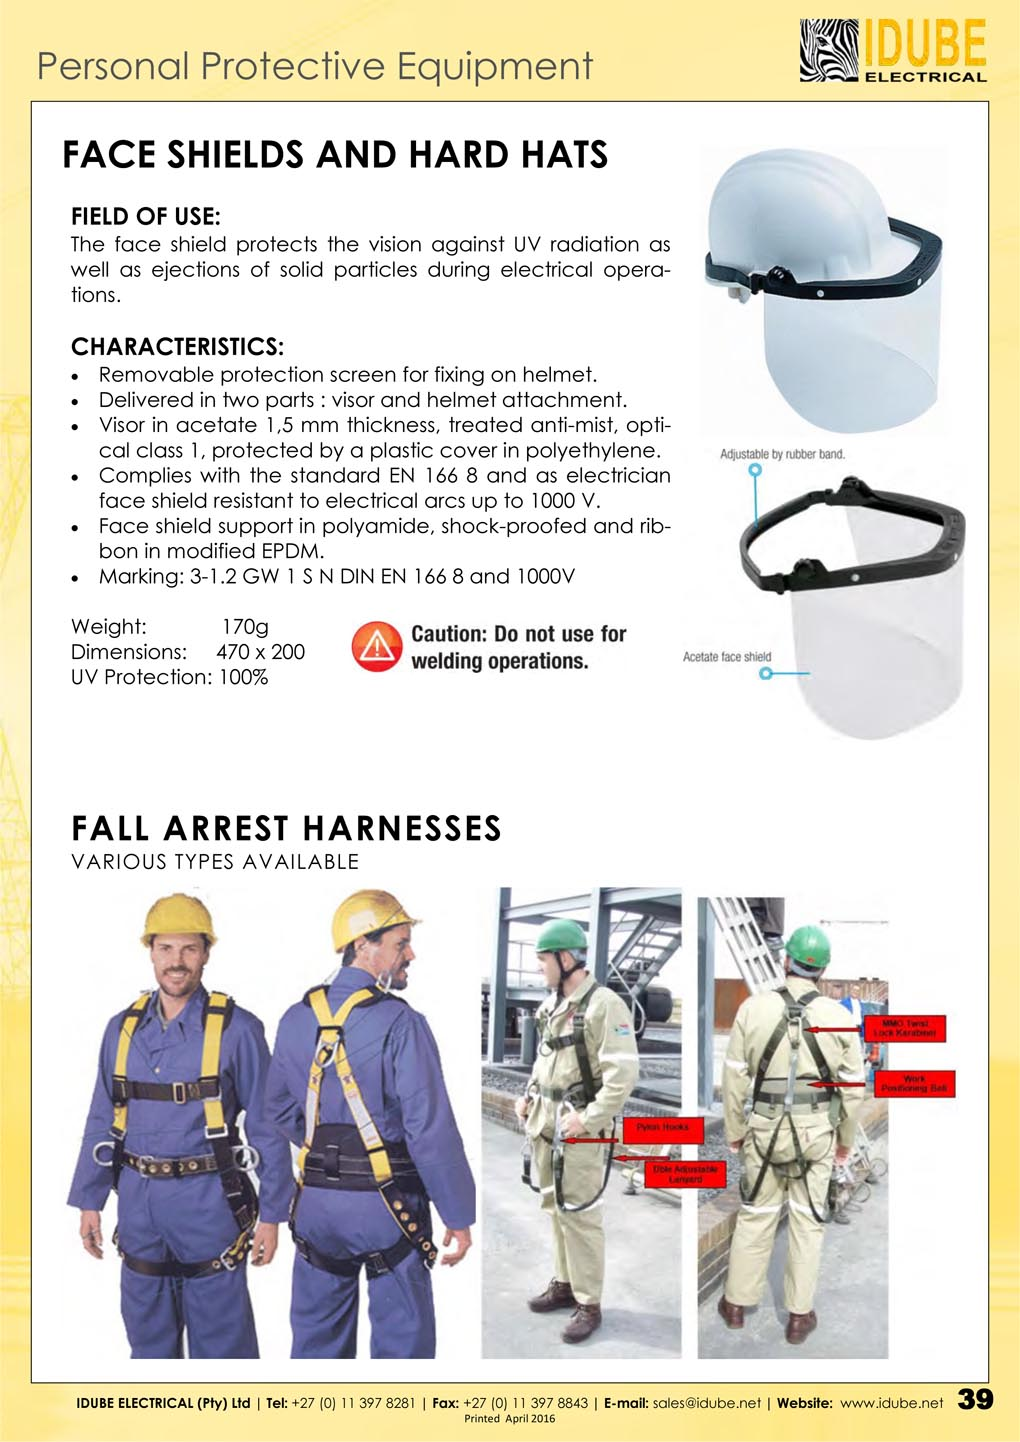 Idube Face Shields, Hard Hats & Fall Arrest Harnesses - 1020 x 1442